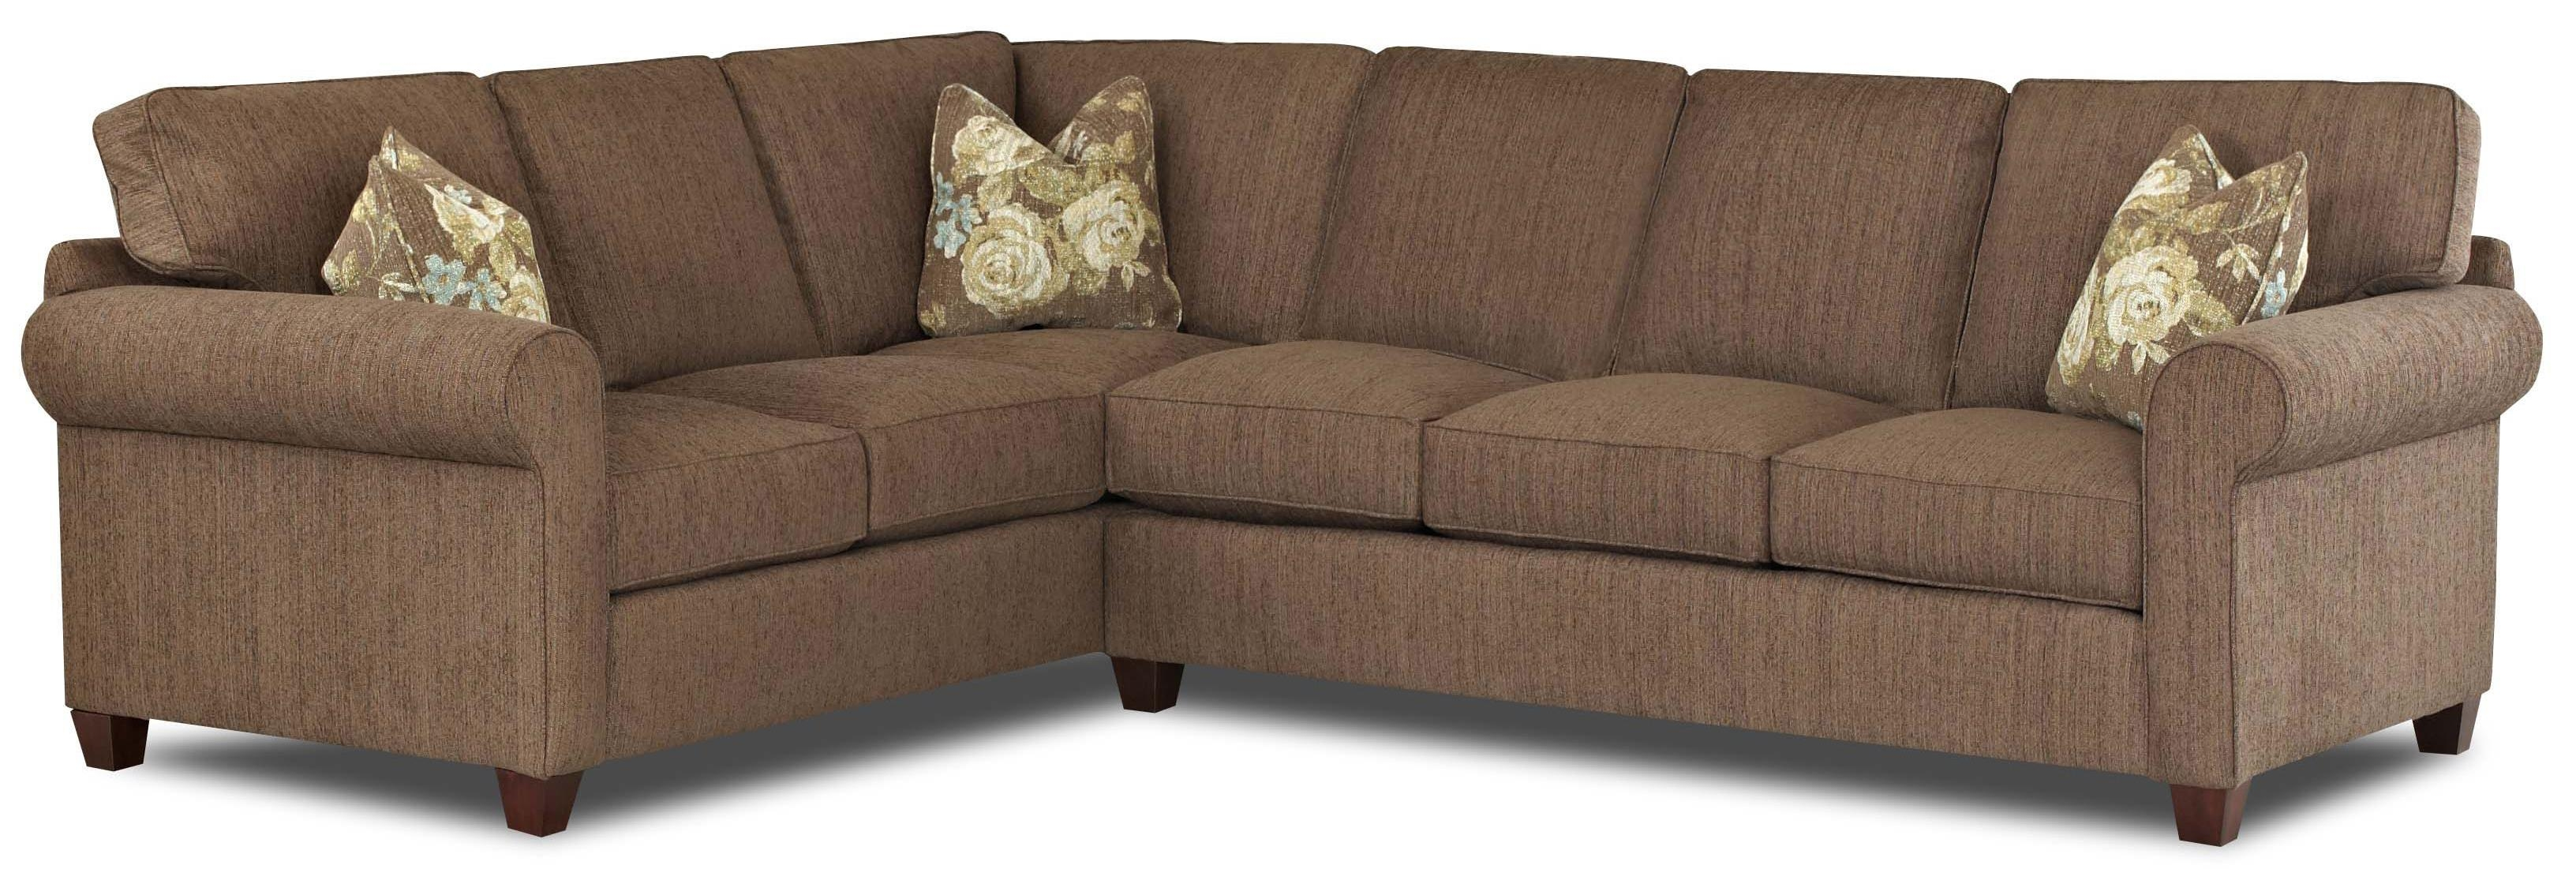 Klaussner Lillington Distinctions Transitional 2 Piece Sectional With Regard To 2 Piece Sofas (View 9 of 20)